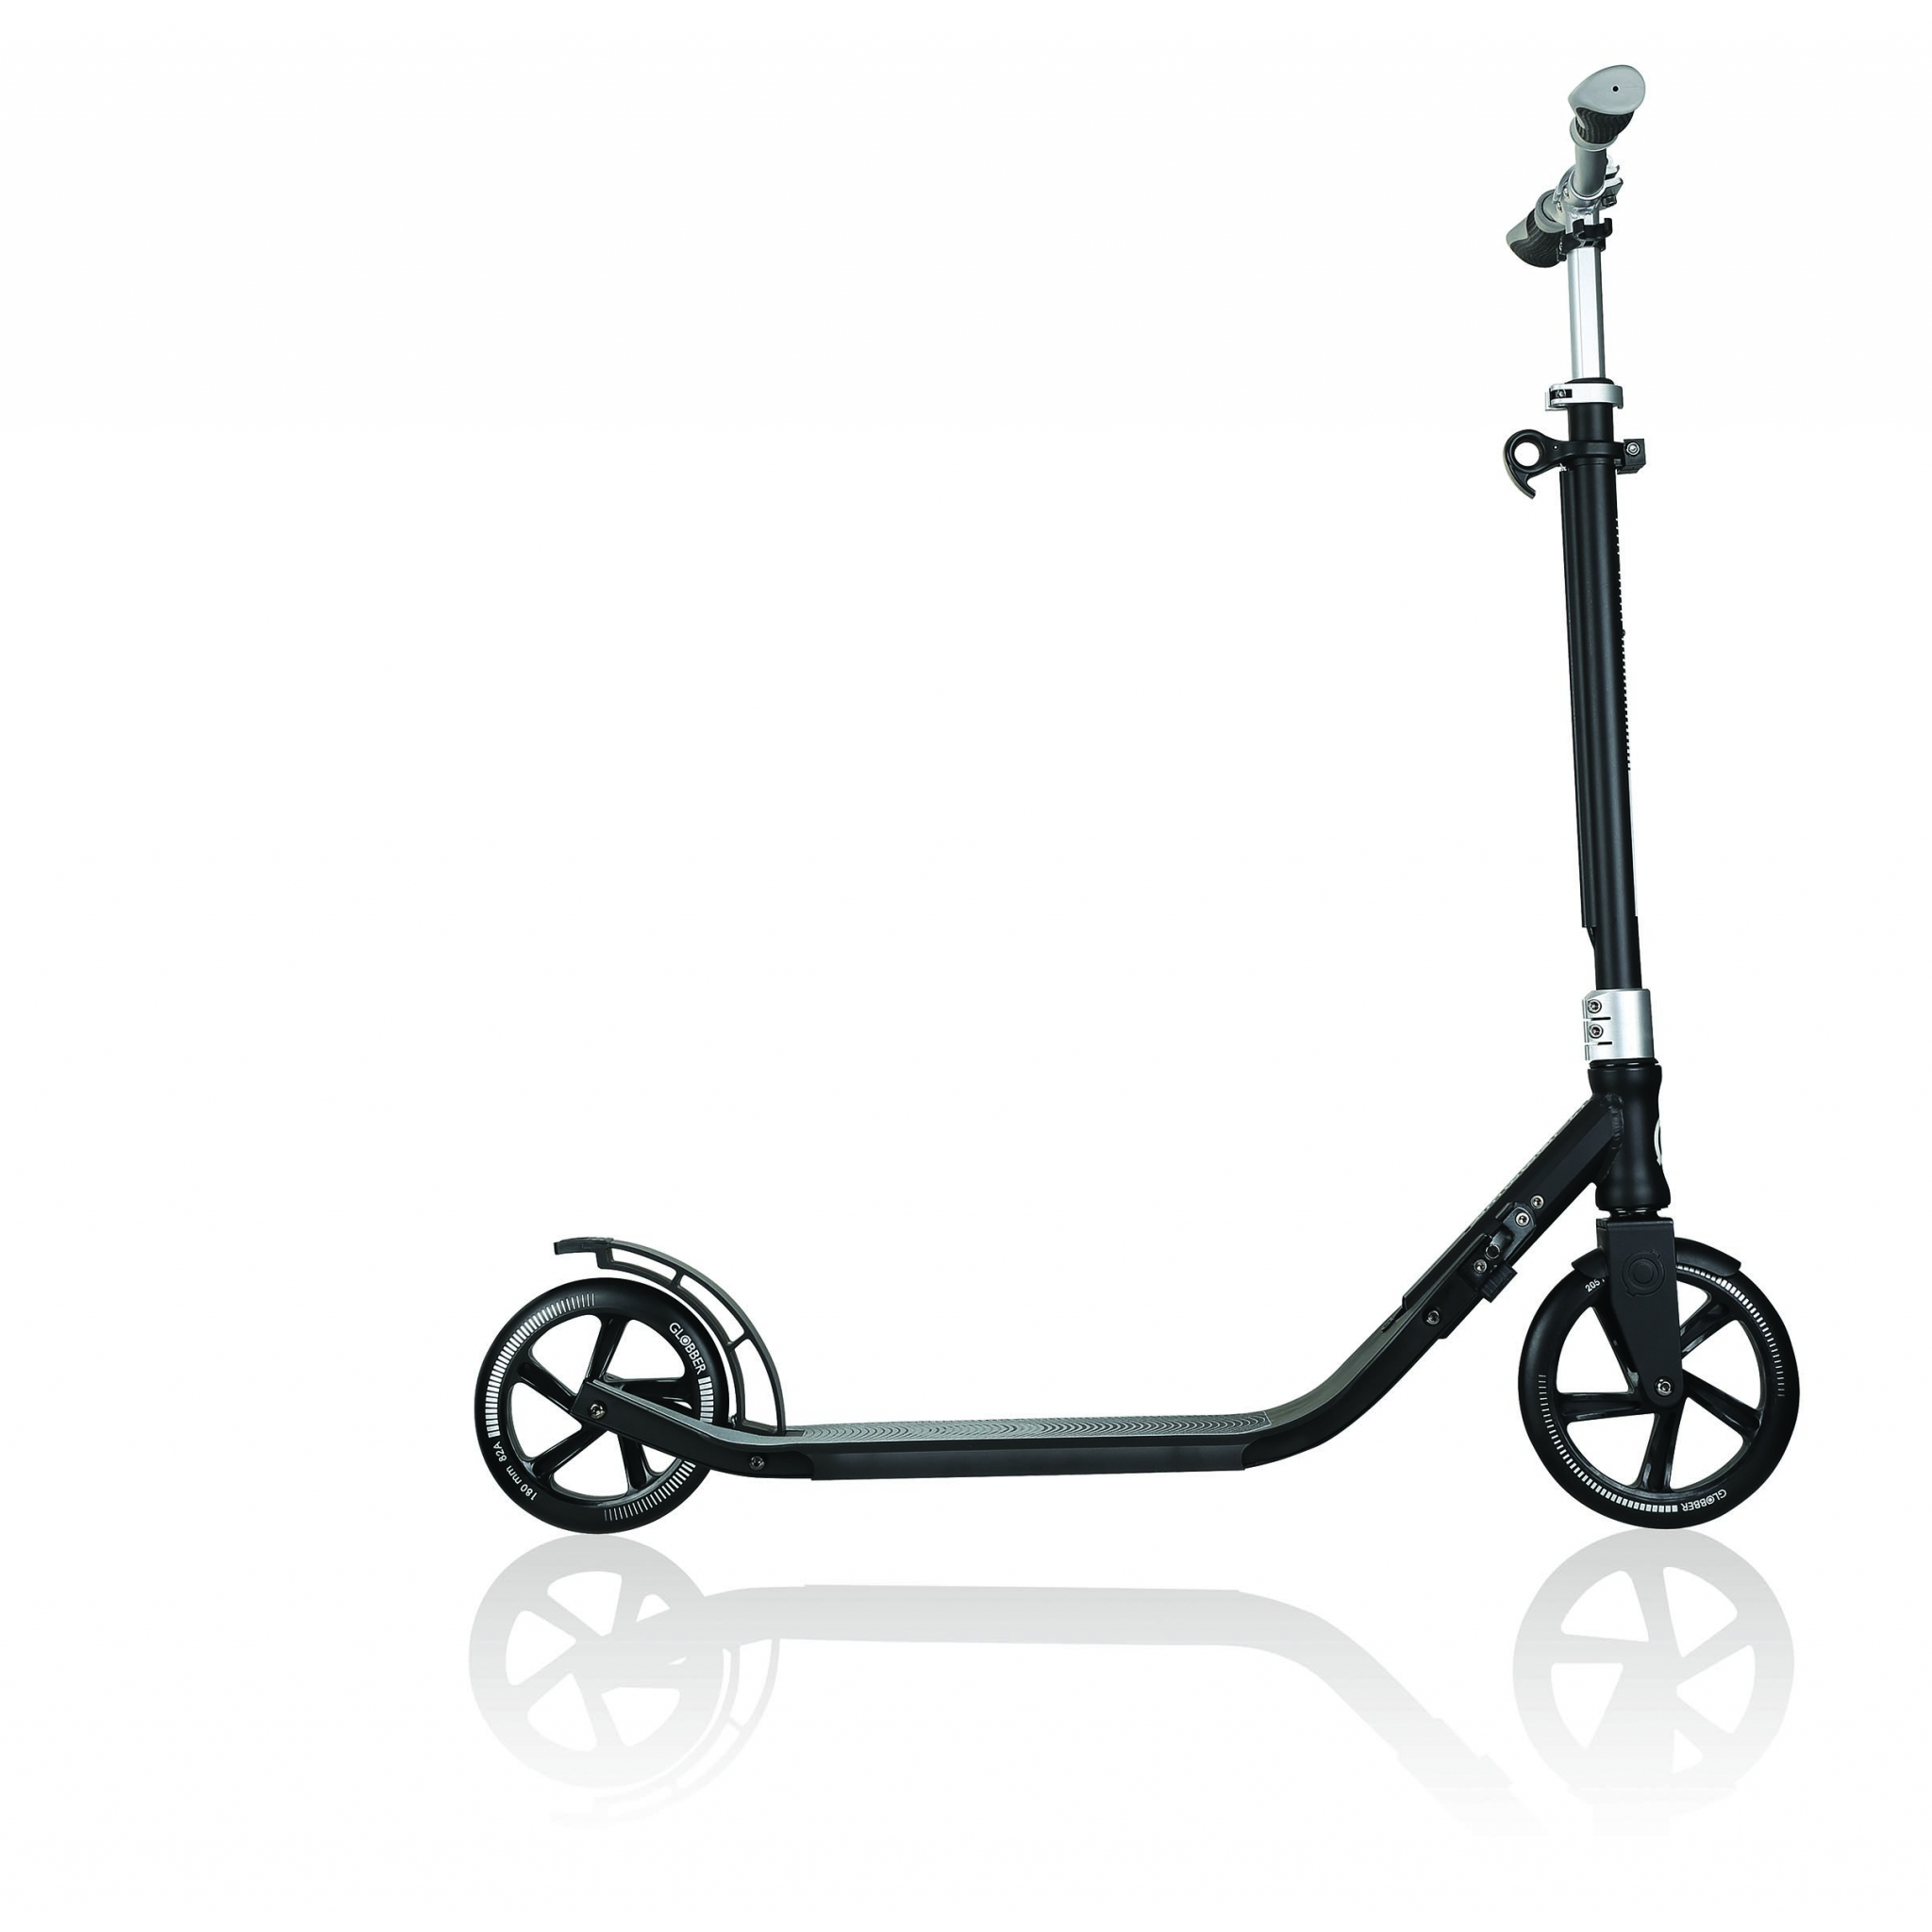 Globber-ONE-NL-205-180-DUO-2-wheel-foldable-scooter-for-adults-aluminium-deck-lead-grey